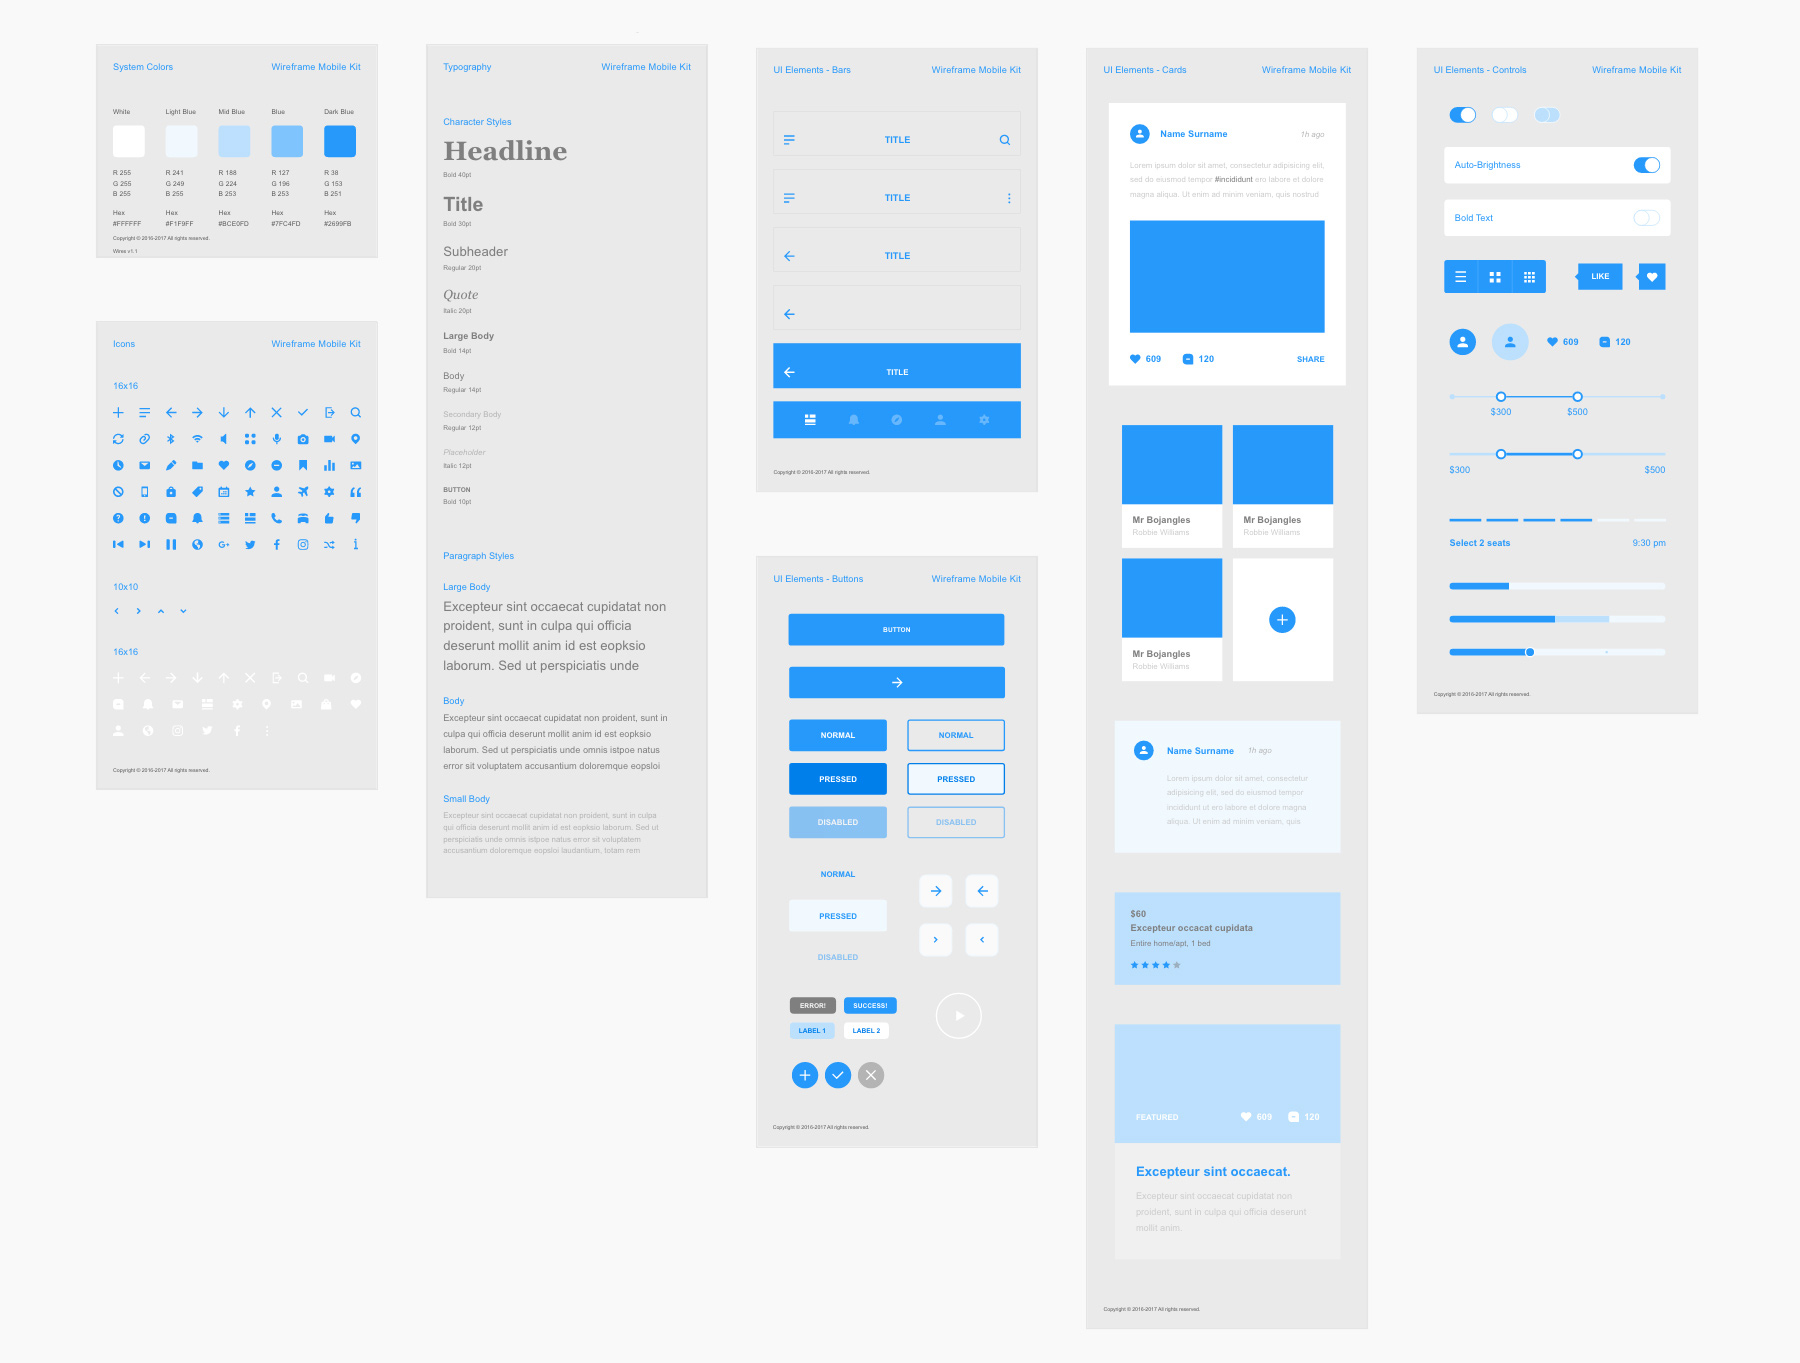 design-app-ui-resource-kitimage-2